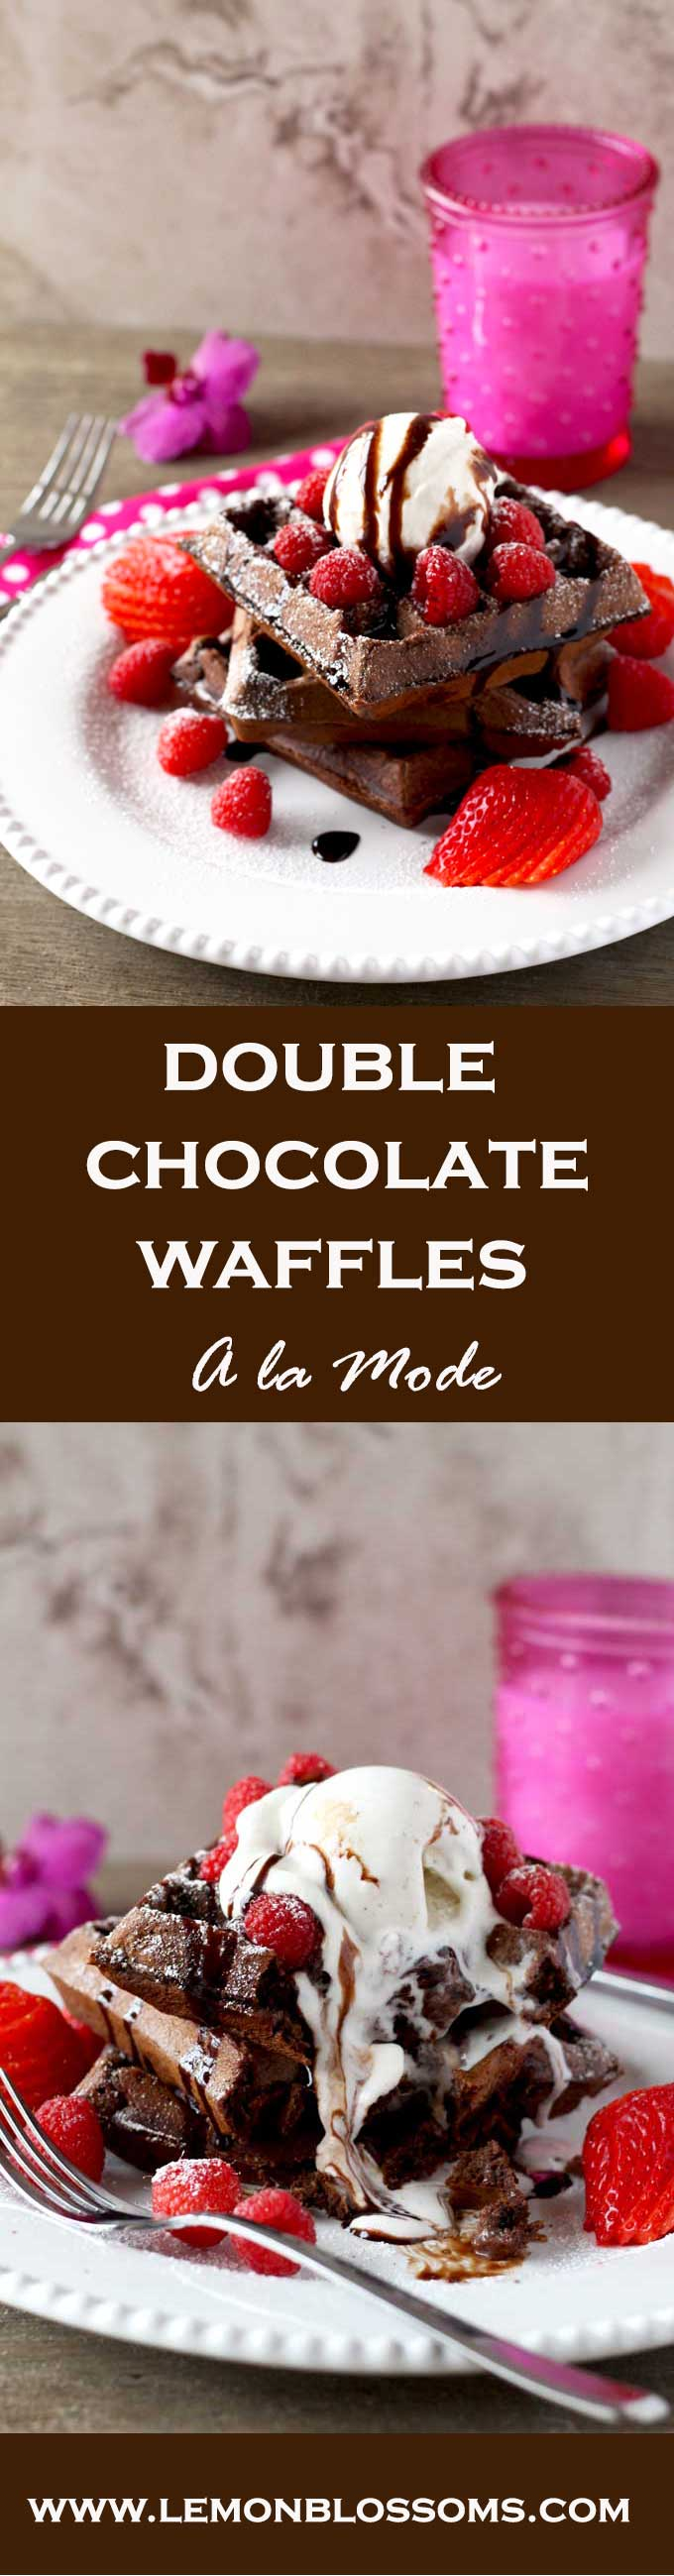 Very easy to make, not too sweet and full of chocolate decadence! These Double Chocolate Waffles a la Mode are the perfect breakfast for any occasion